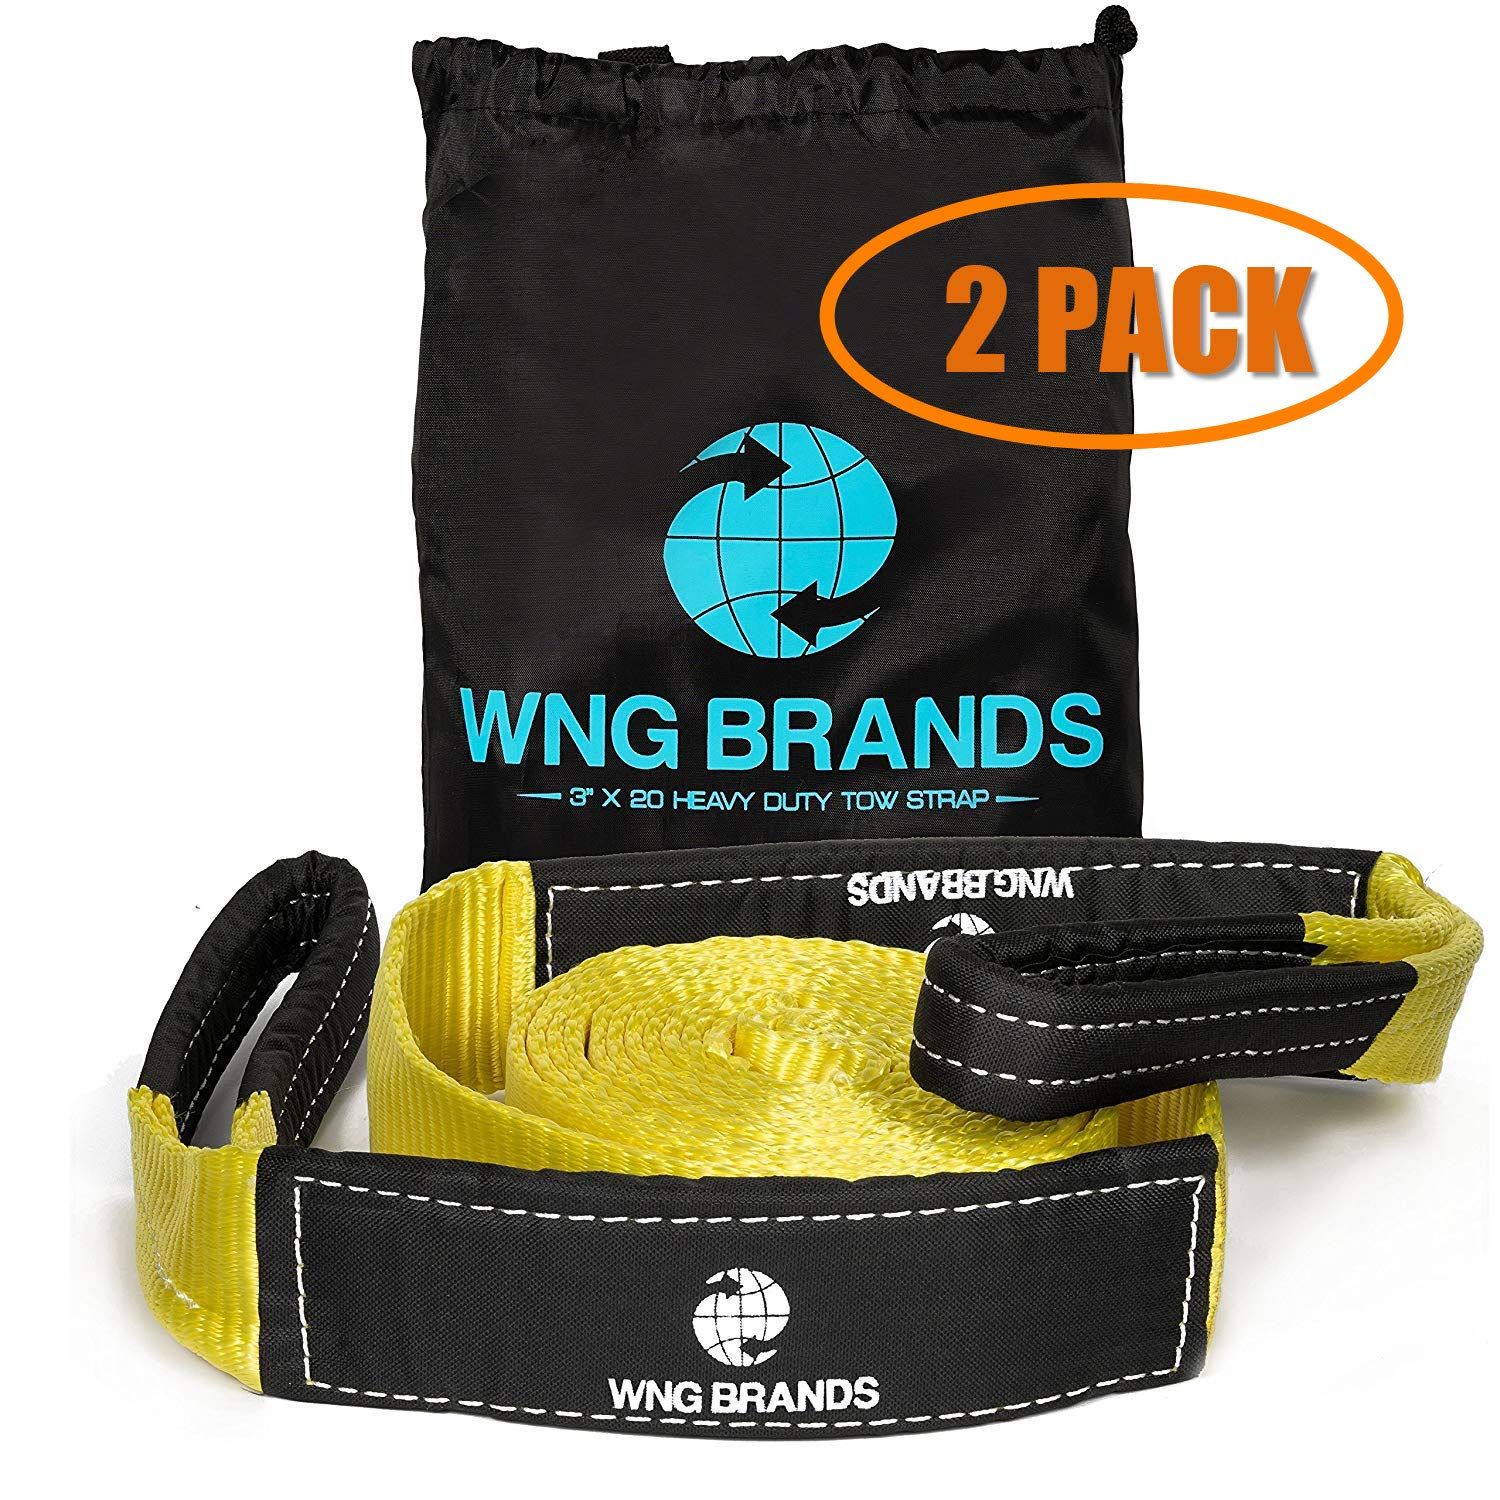 WNG Brands Recovery Tow Strap 30K LBS - Breaking Capacity Heavy Duty Vehicle Towing Winch Snatch Strap Car Emergency Rope Reinforced Looped Ends Highly Strong & Durable Off Road Tree Saver 20 Feet by WNG Brands